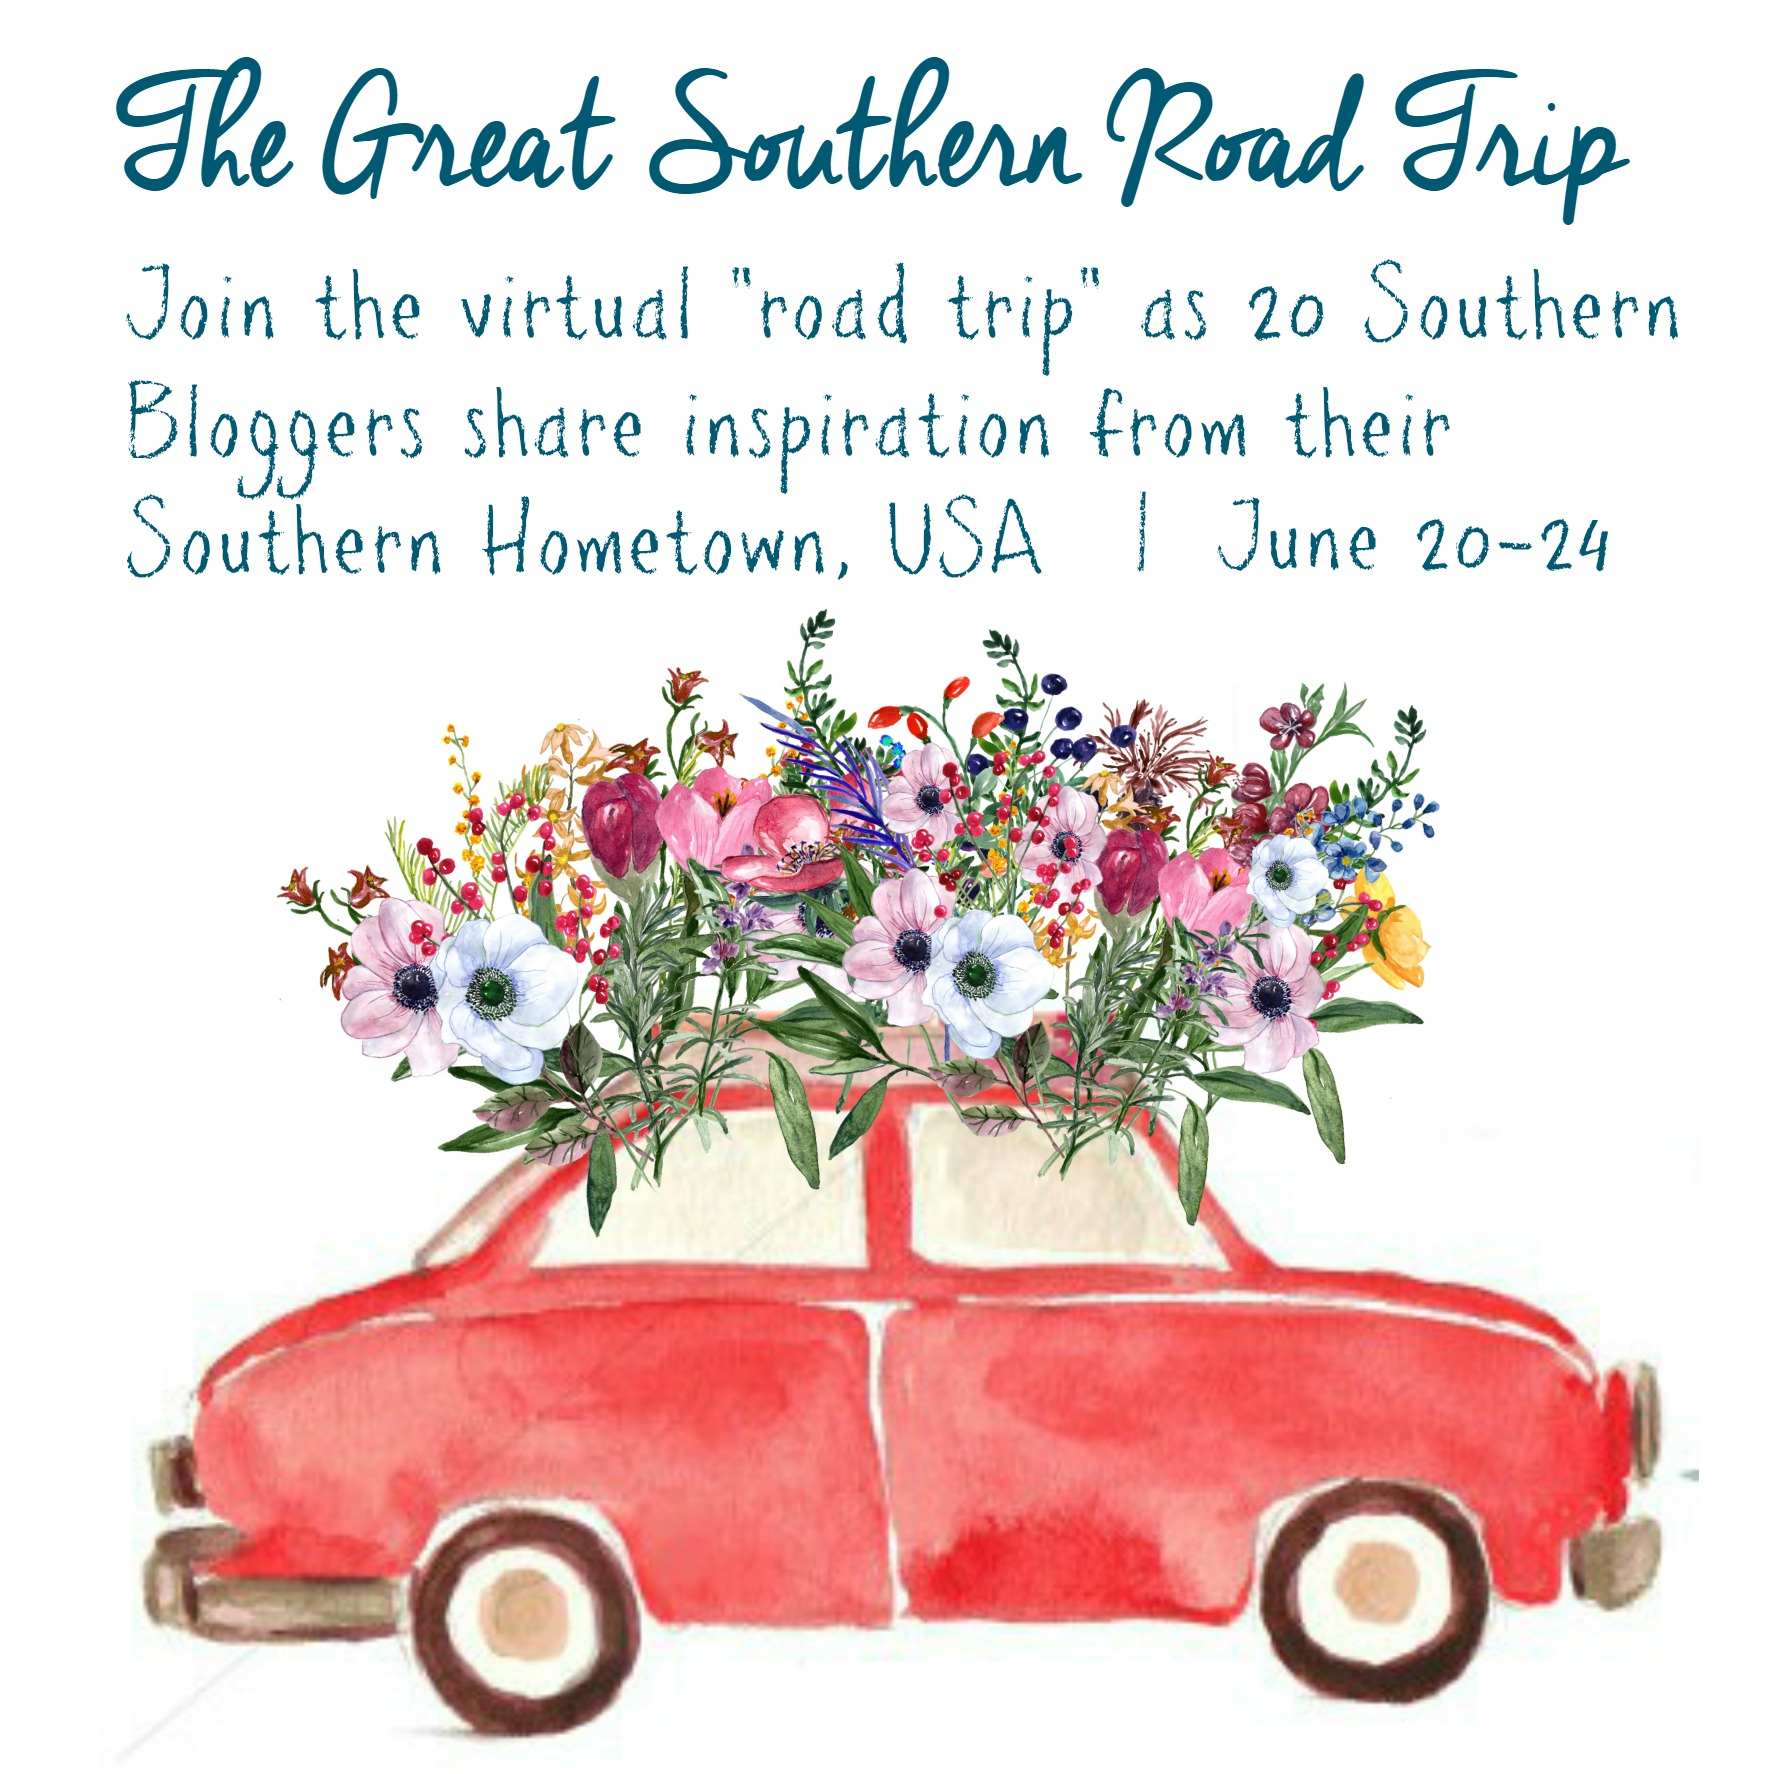 Join your favorite bloggers for The Great Southern Road Trip, a celebration of our southern hometowns. We'll take you on a tour of the crafts, recipes, sights, people and traditions that make our hometowns unique. #greatsouthernroadtrip